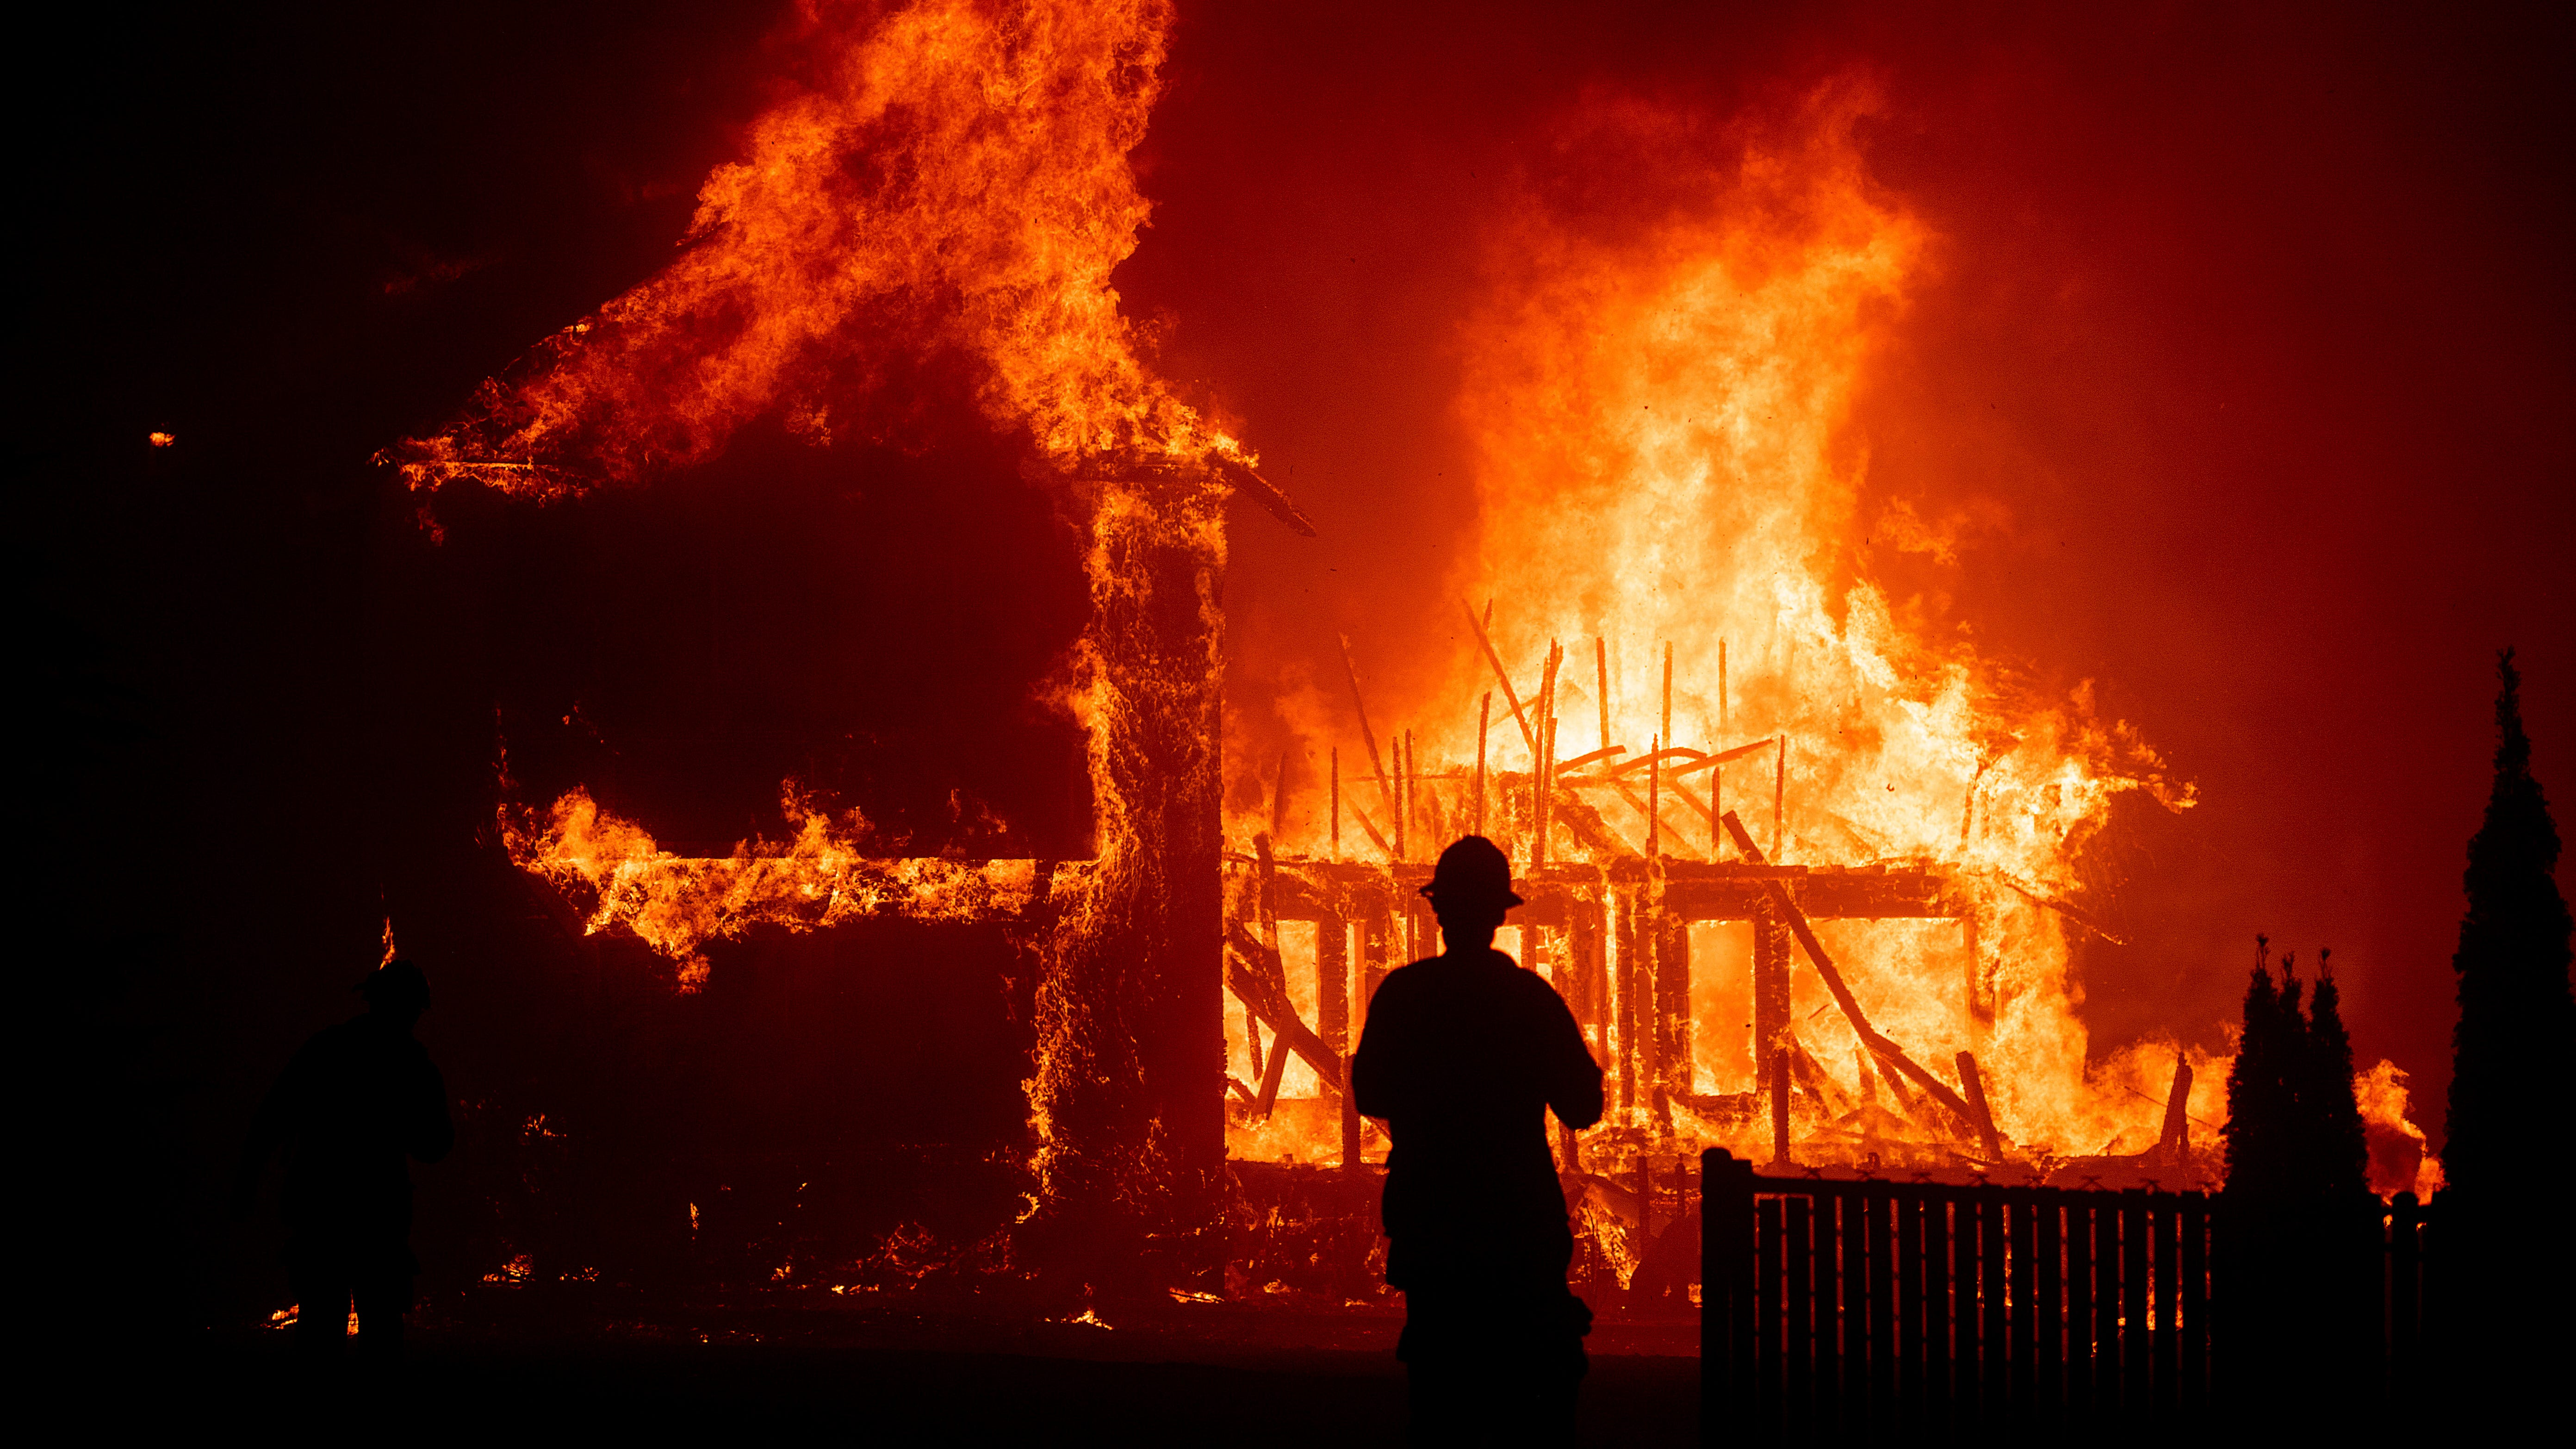 Where will the West's next deadly wildfire strike? The risks are everywhere